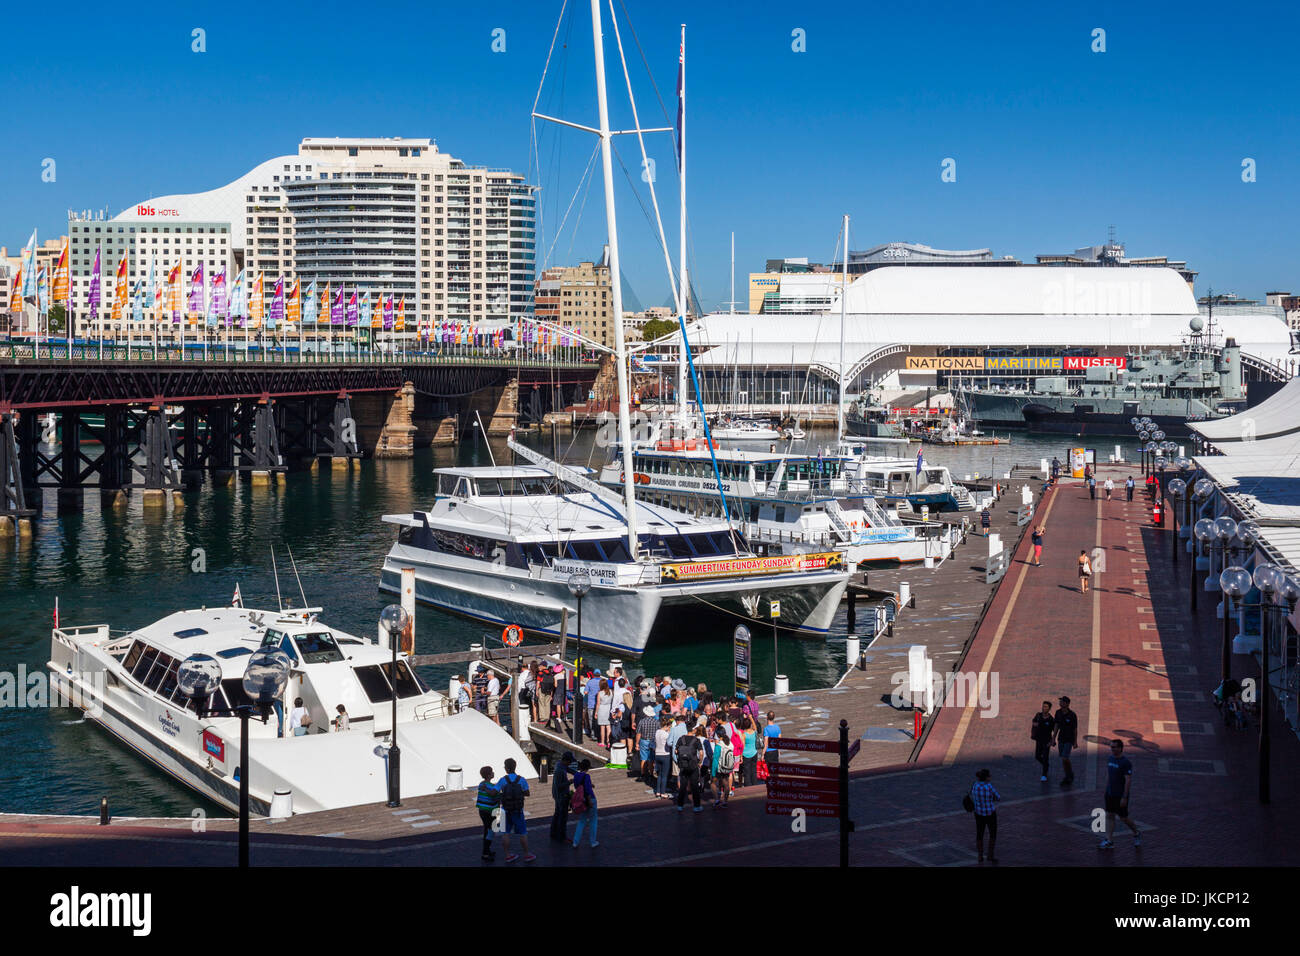 Australia, New South Wales, NSW, Sydney, Darling Harbour, morning - Stock Image